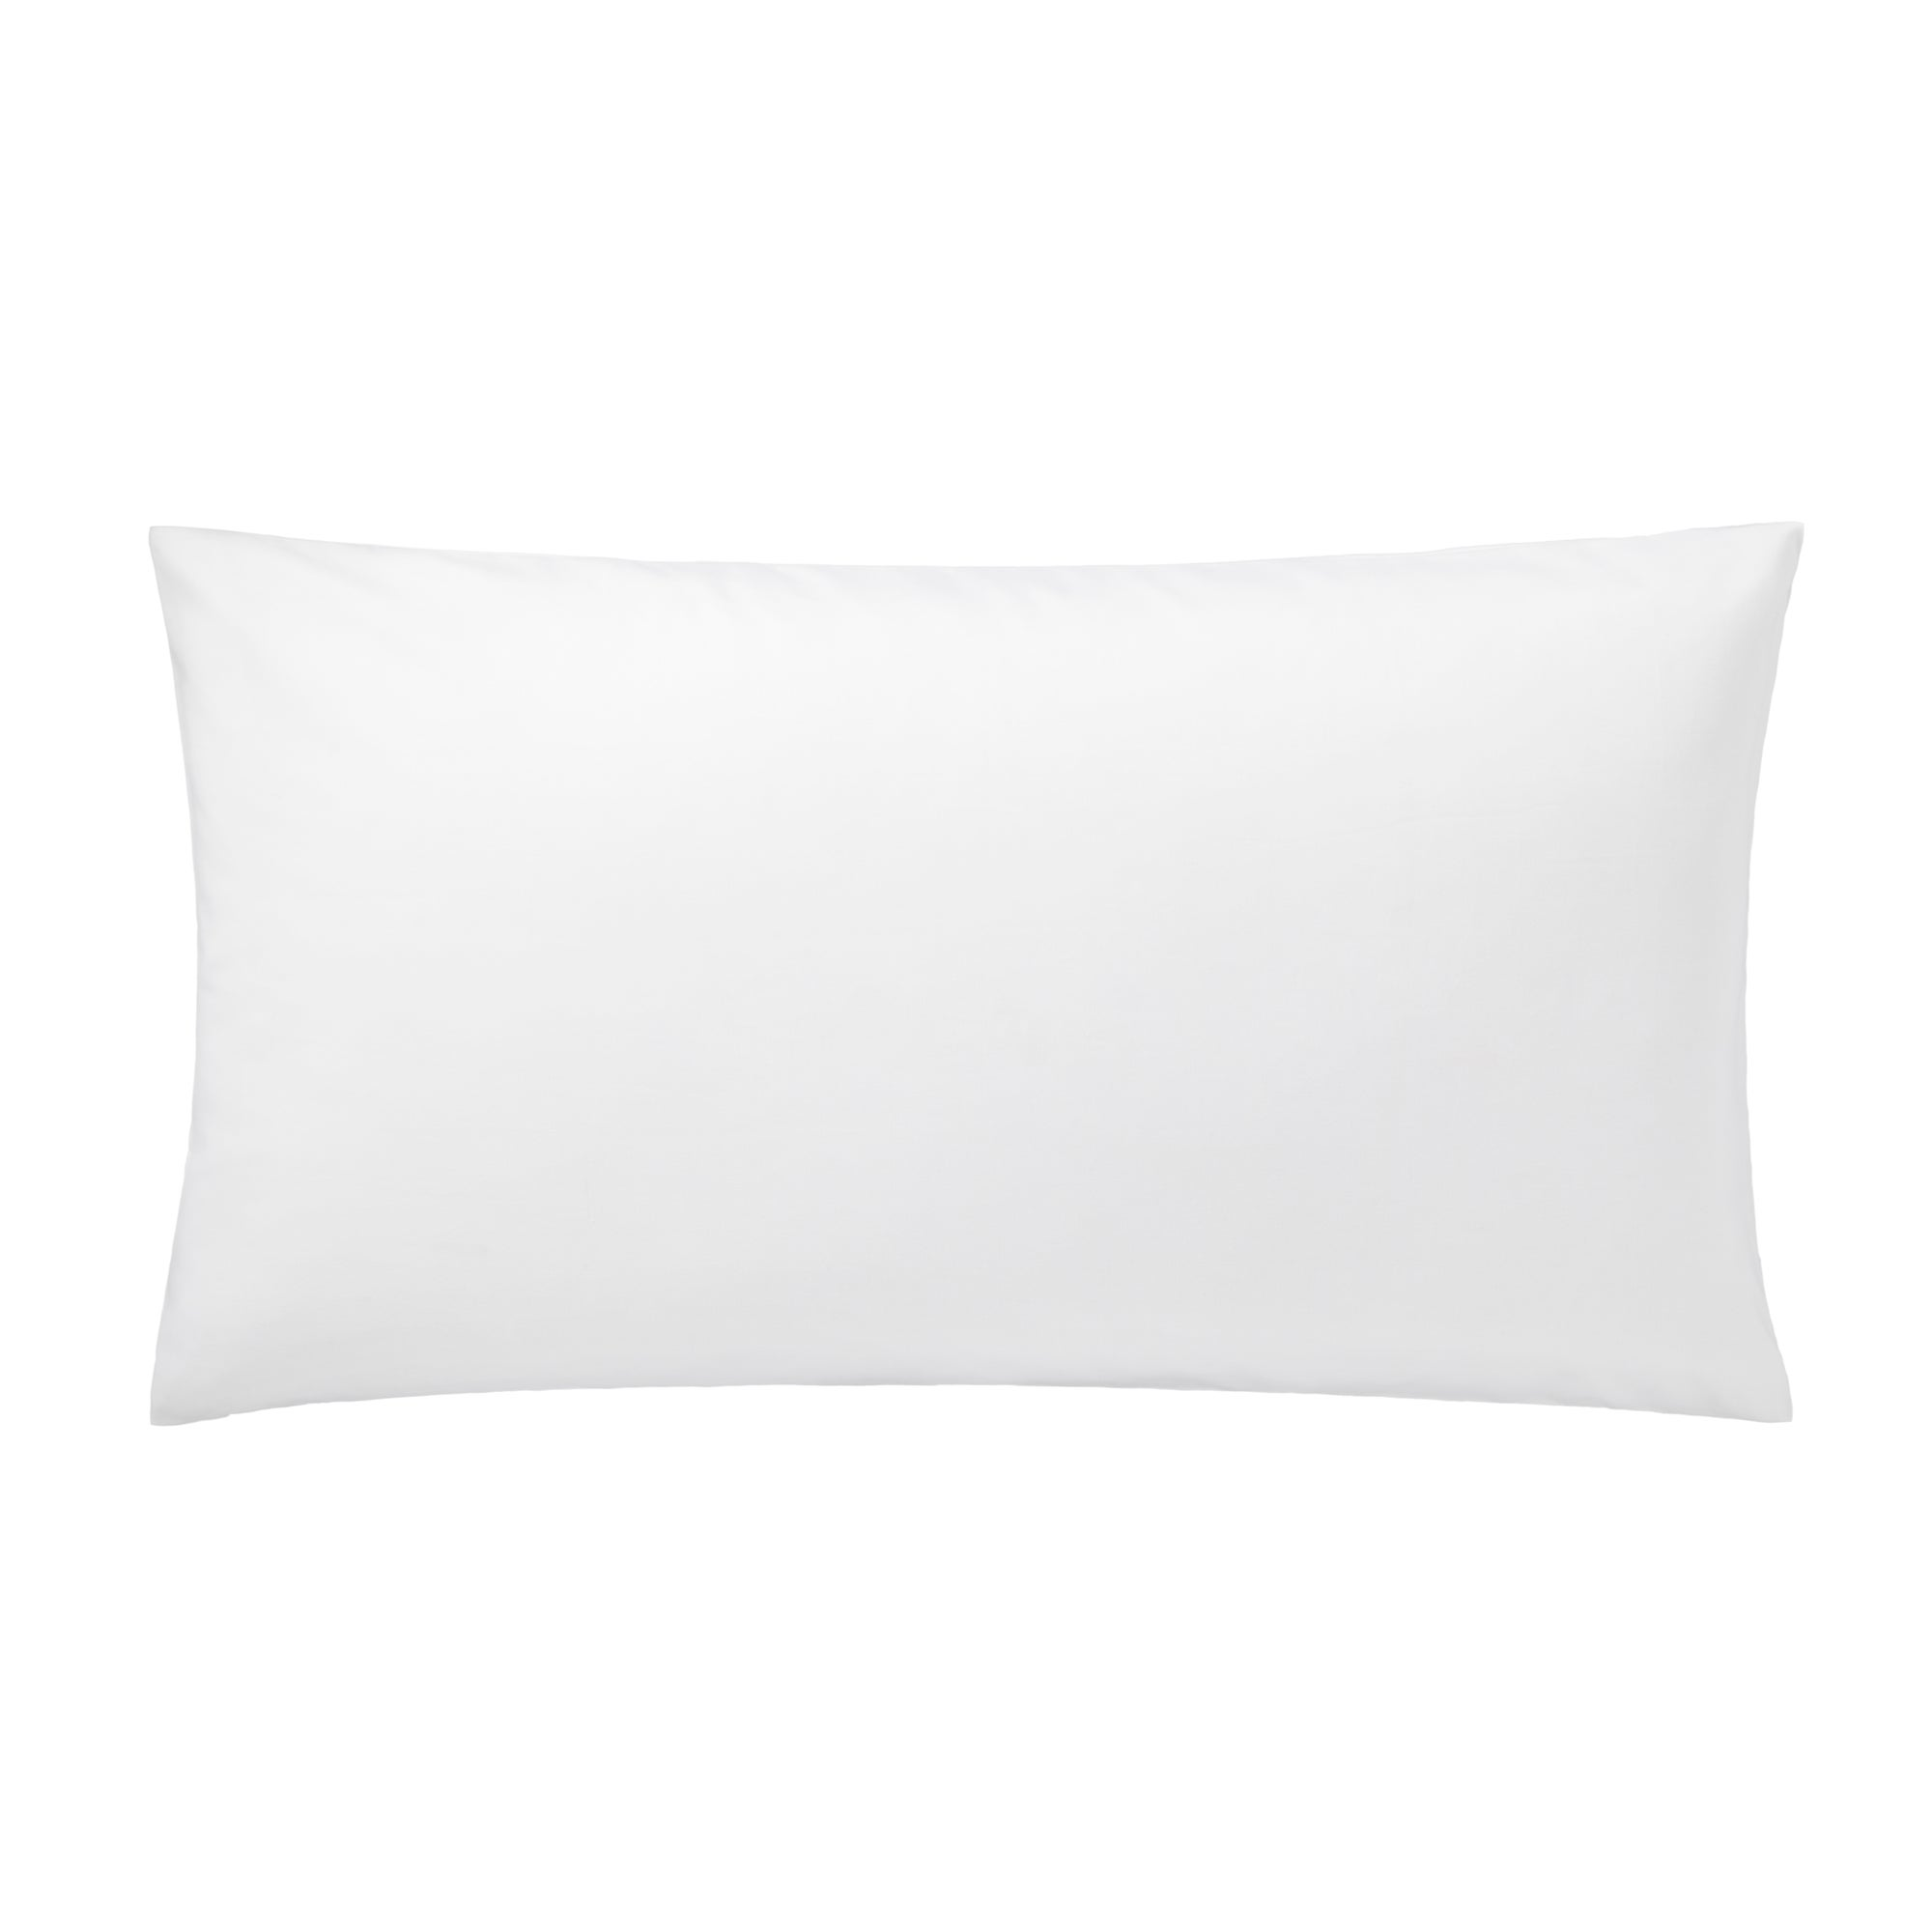 White Hotel Plain 300 Thread Count Collection Kingsize Pillowcase